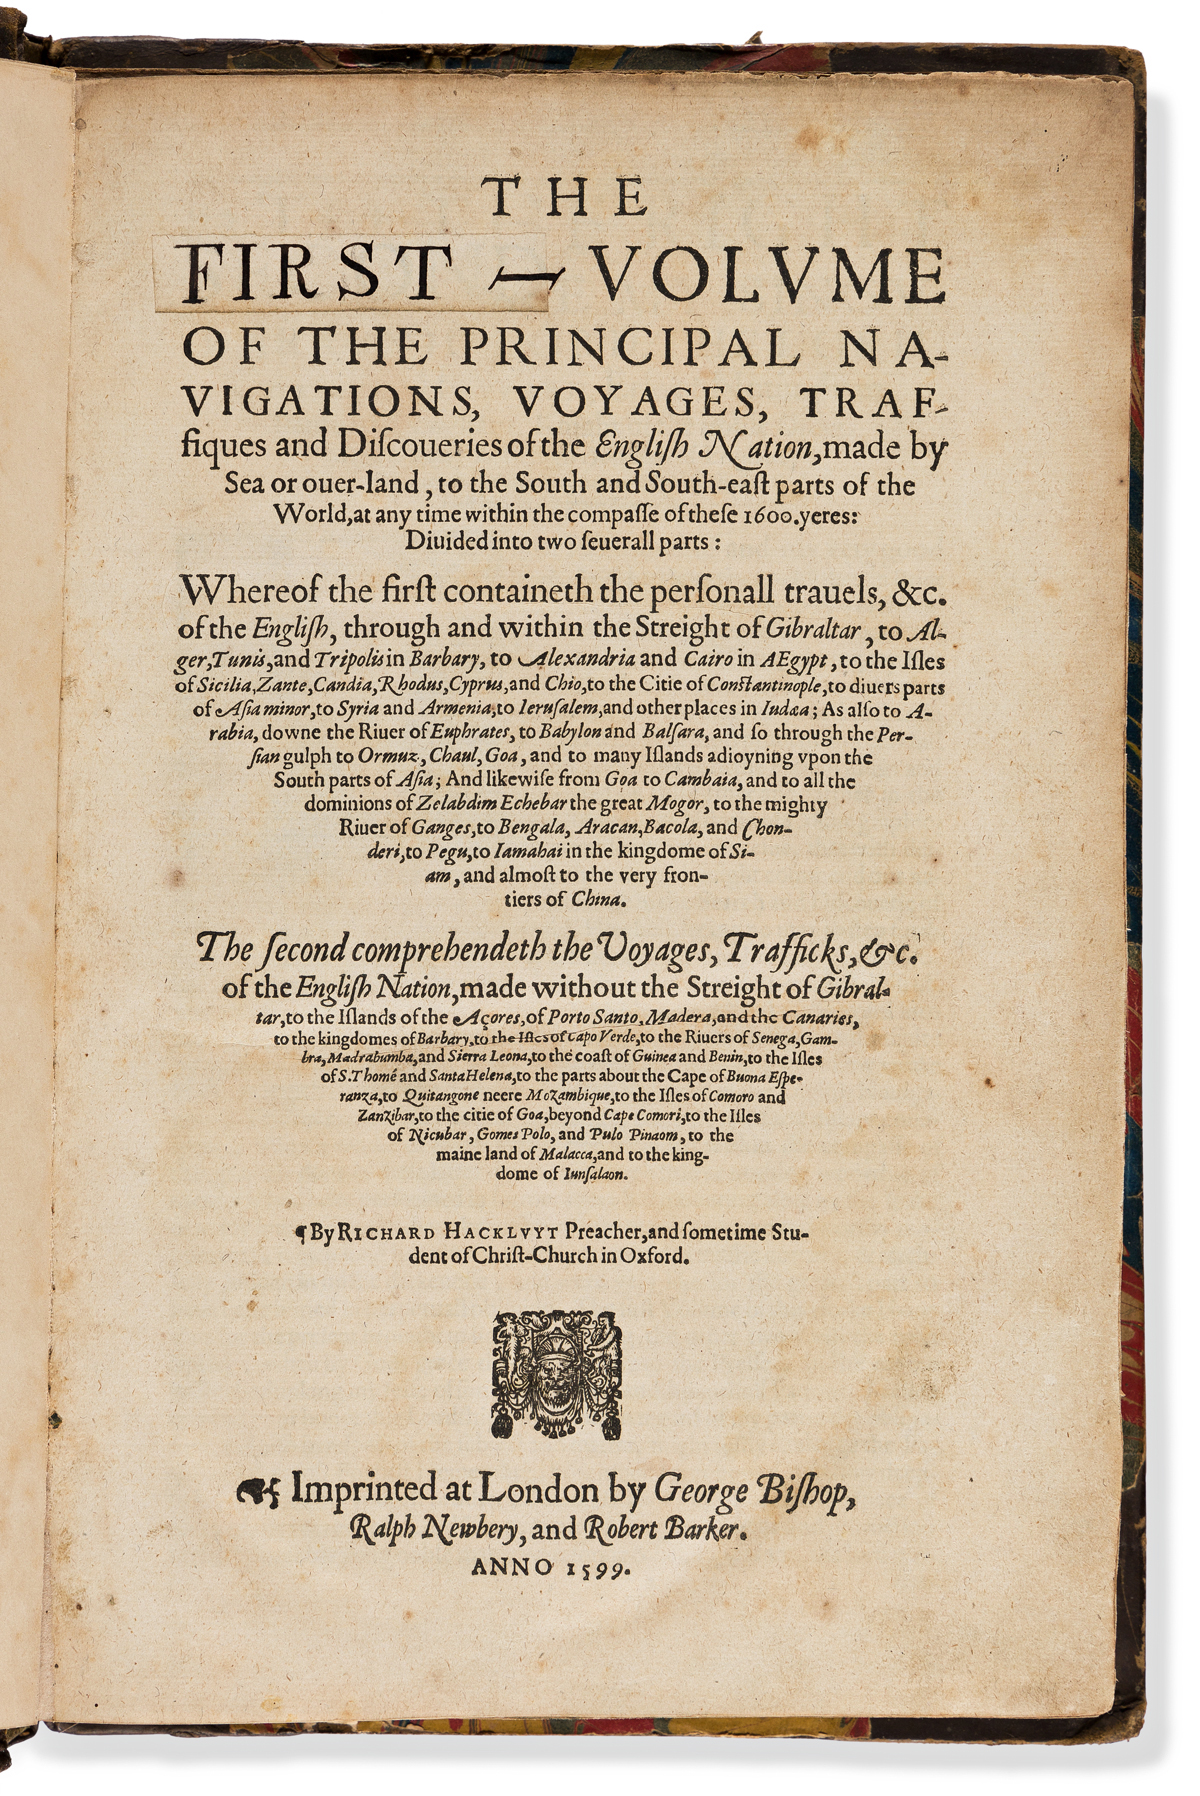 Hakluyt, Richard (1552?-1616) The Principal Navigations, Voyages, Traffiques, and Discoveries of the English Nation, Made by Sea or Ove